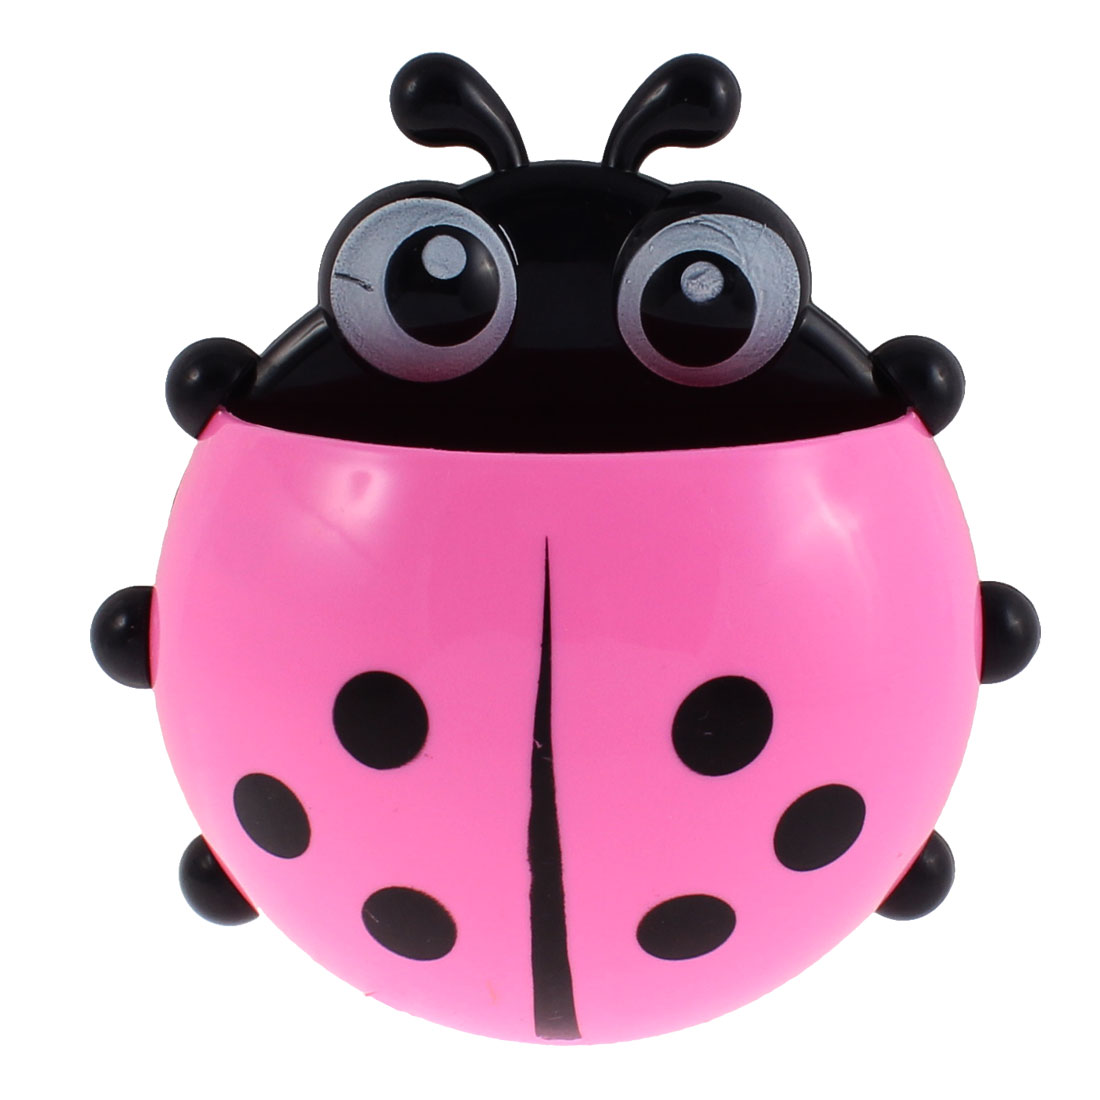 Household Plastic Ladybird Design Suction Cup Toothbrush Holder Pink